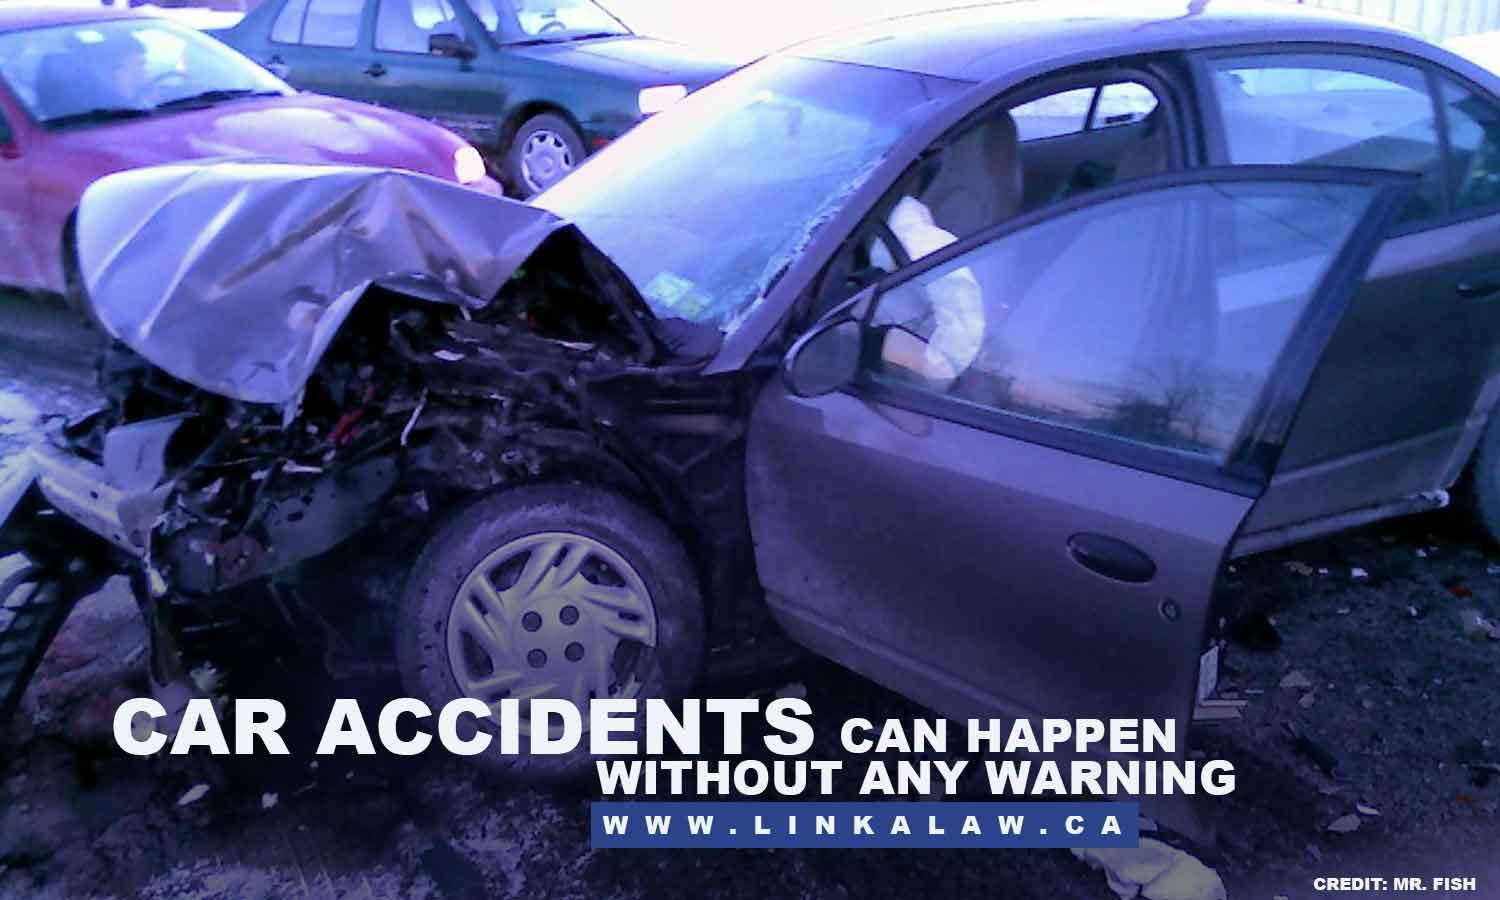 Car accidents can happen without any warning